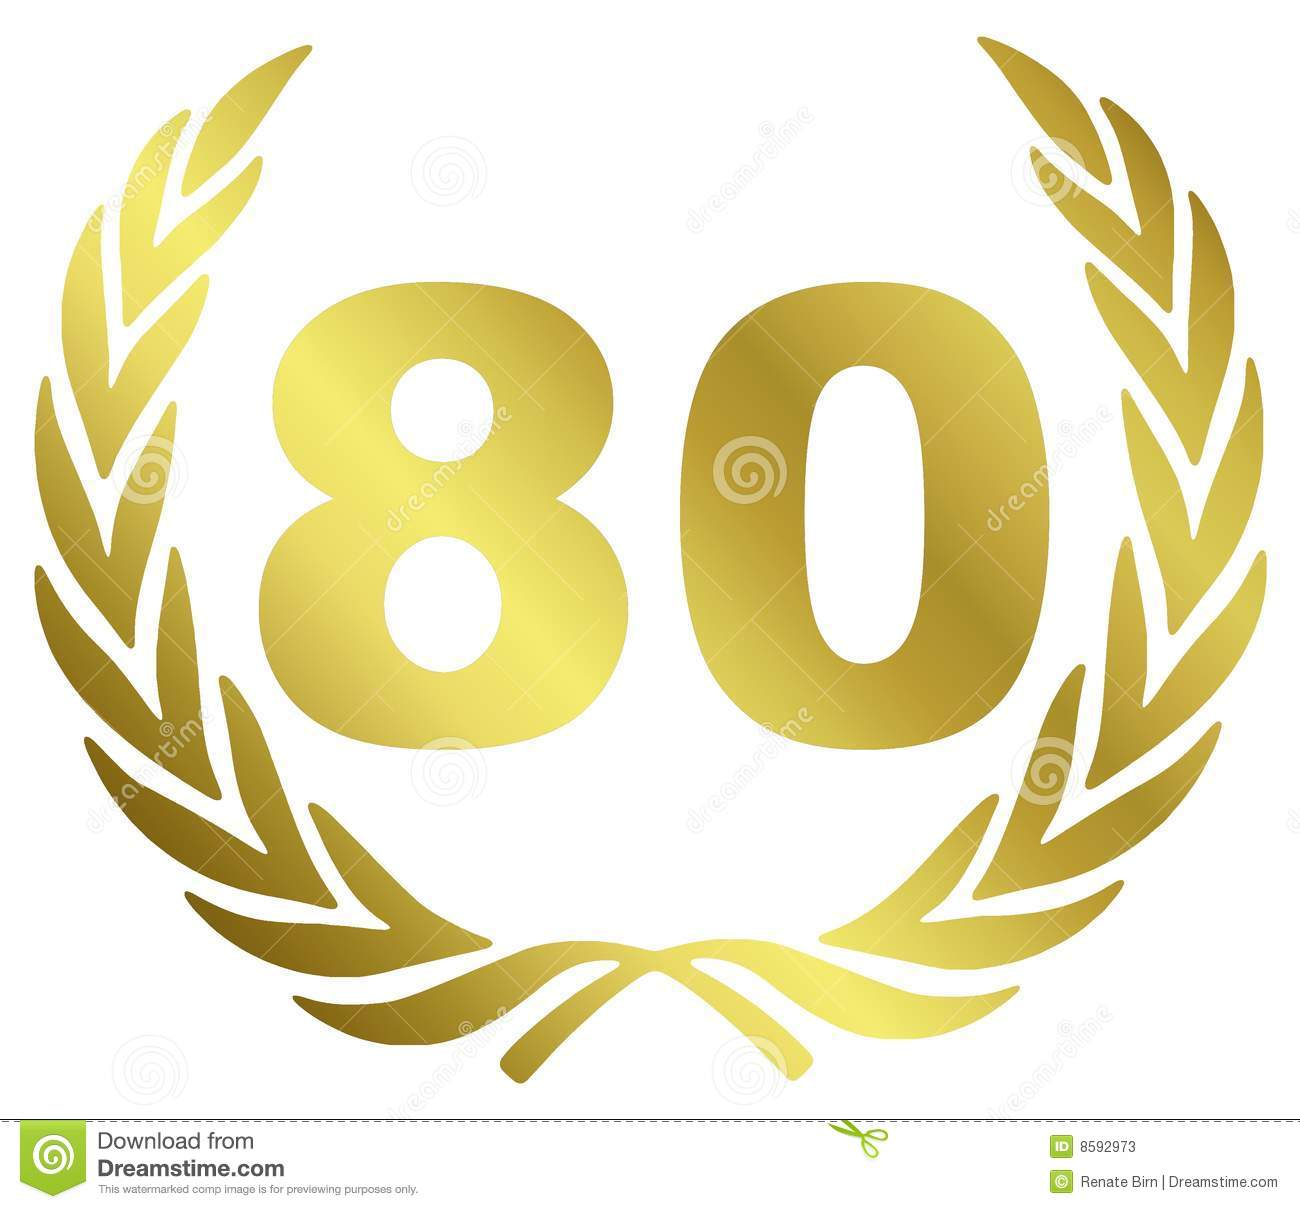 80 Anniversary illustration with laurel wreath.